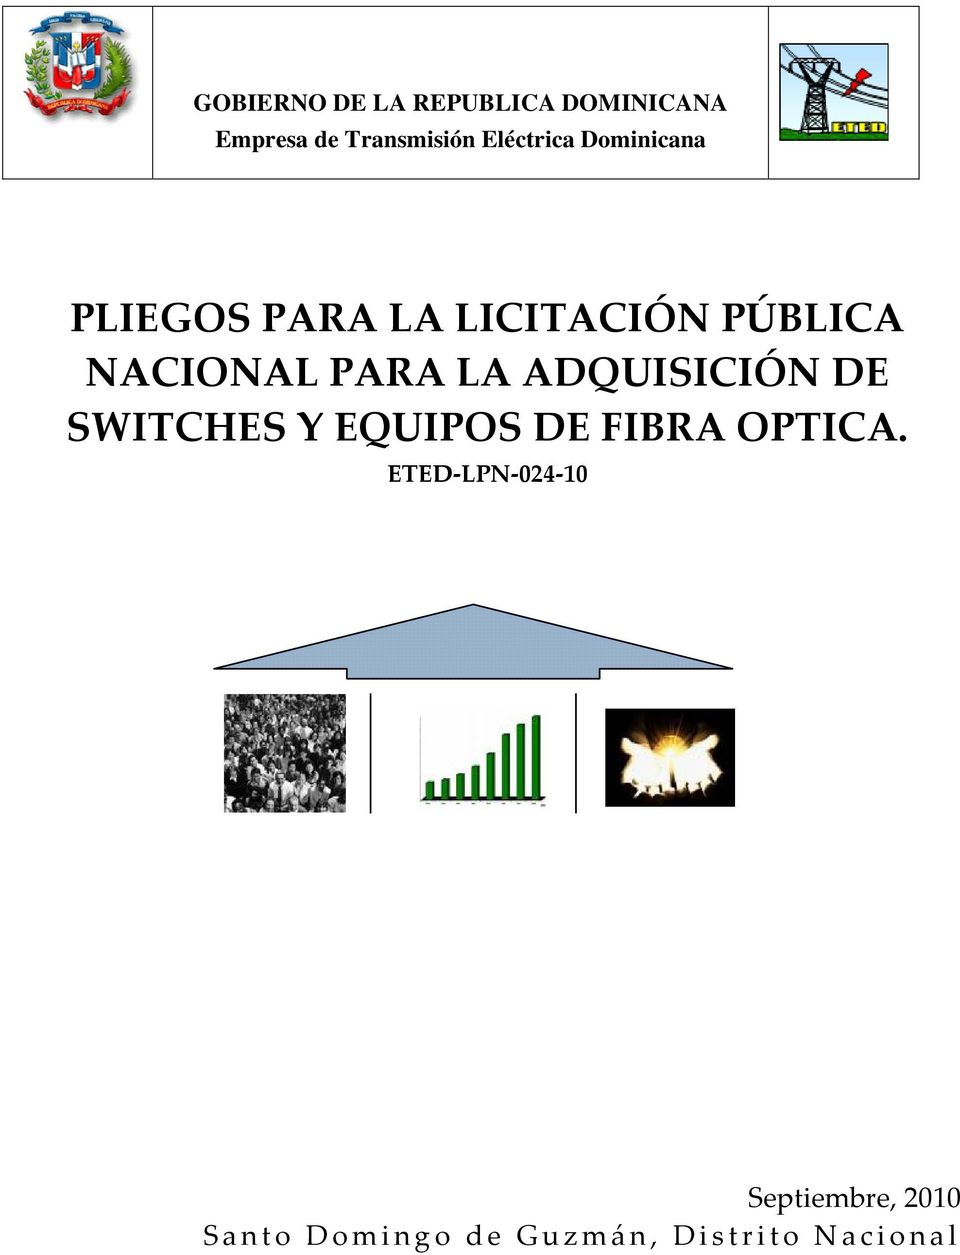 PARA LA ADQUISICIÓN DE SWITCHES Y EQUIPOS DE FIBRA OPTICA.